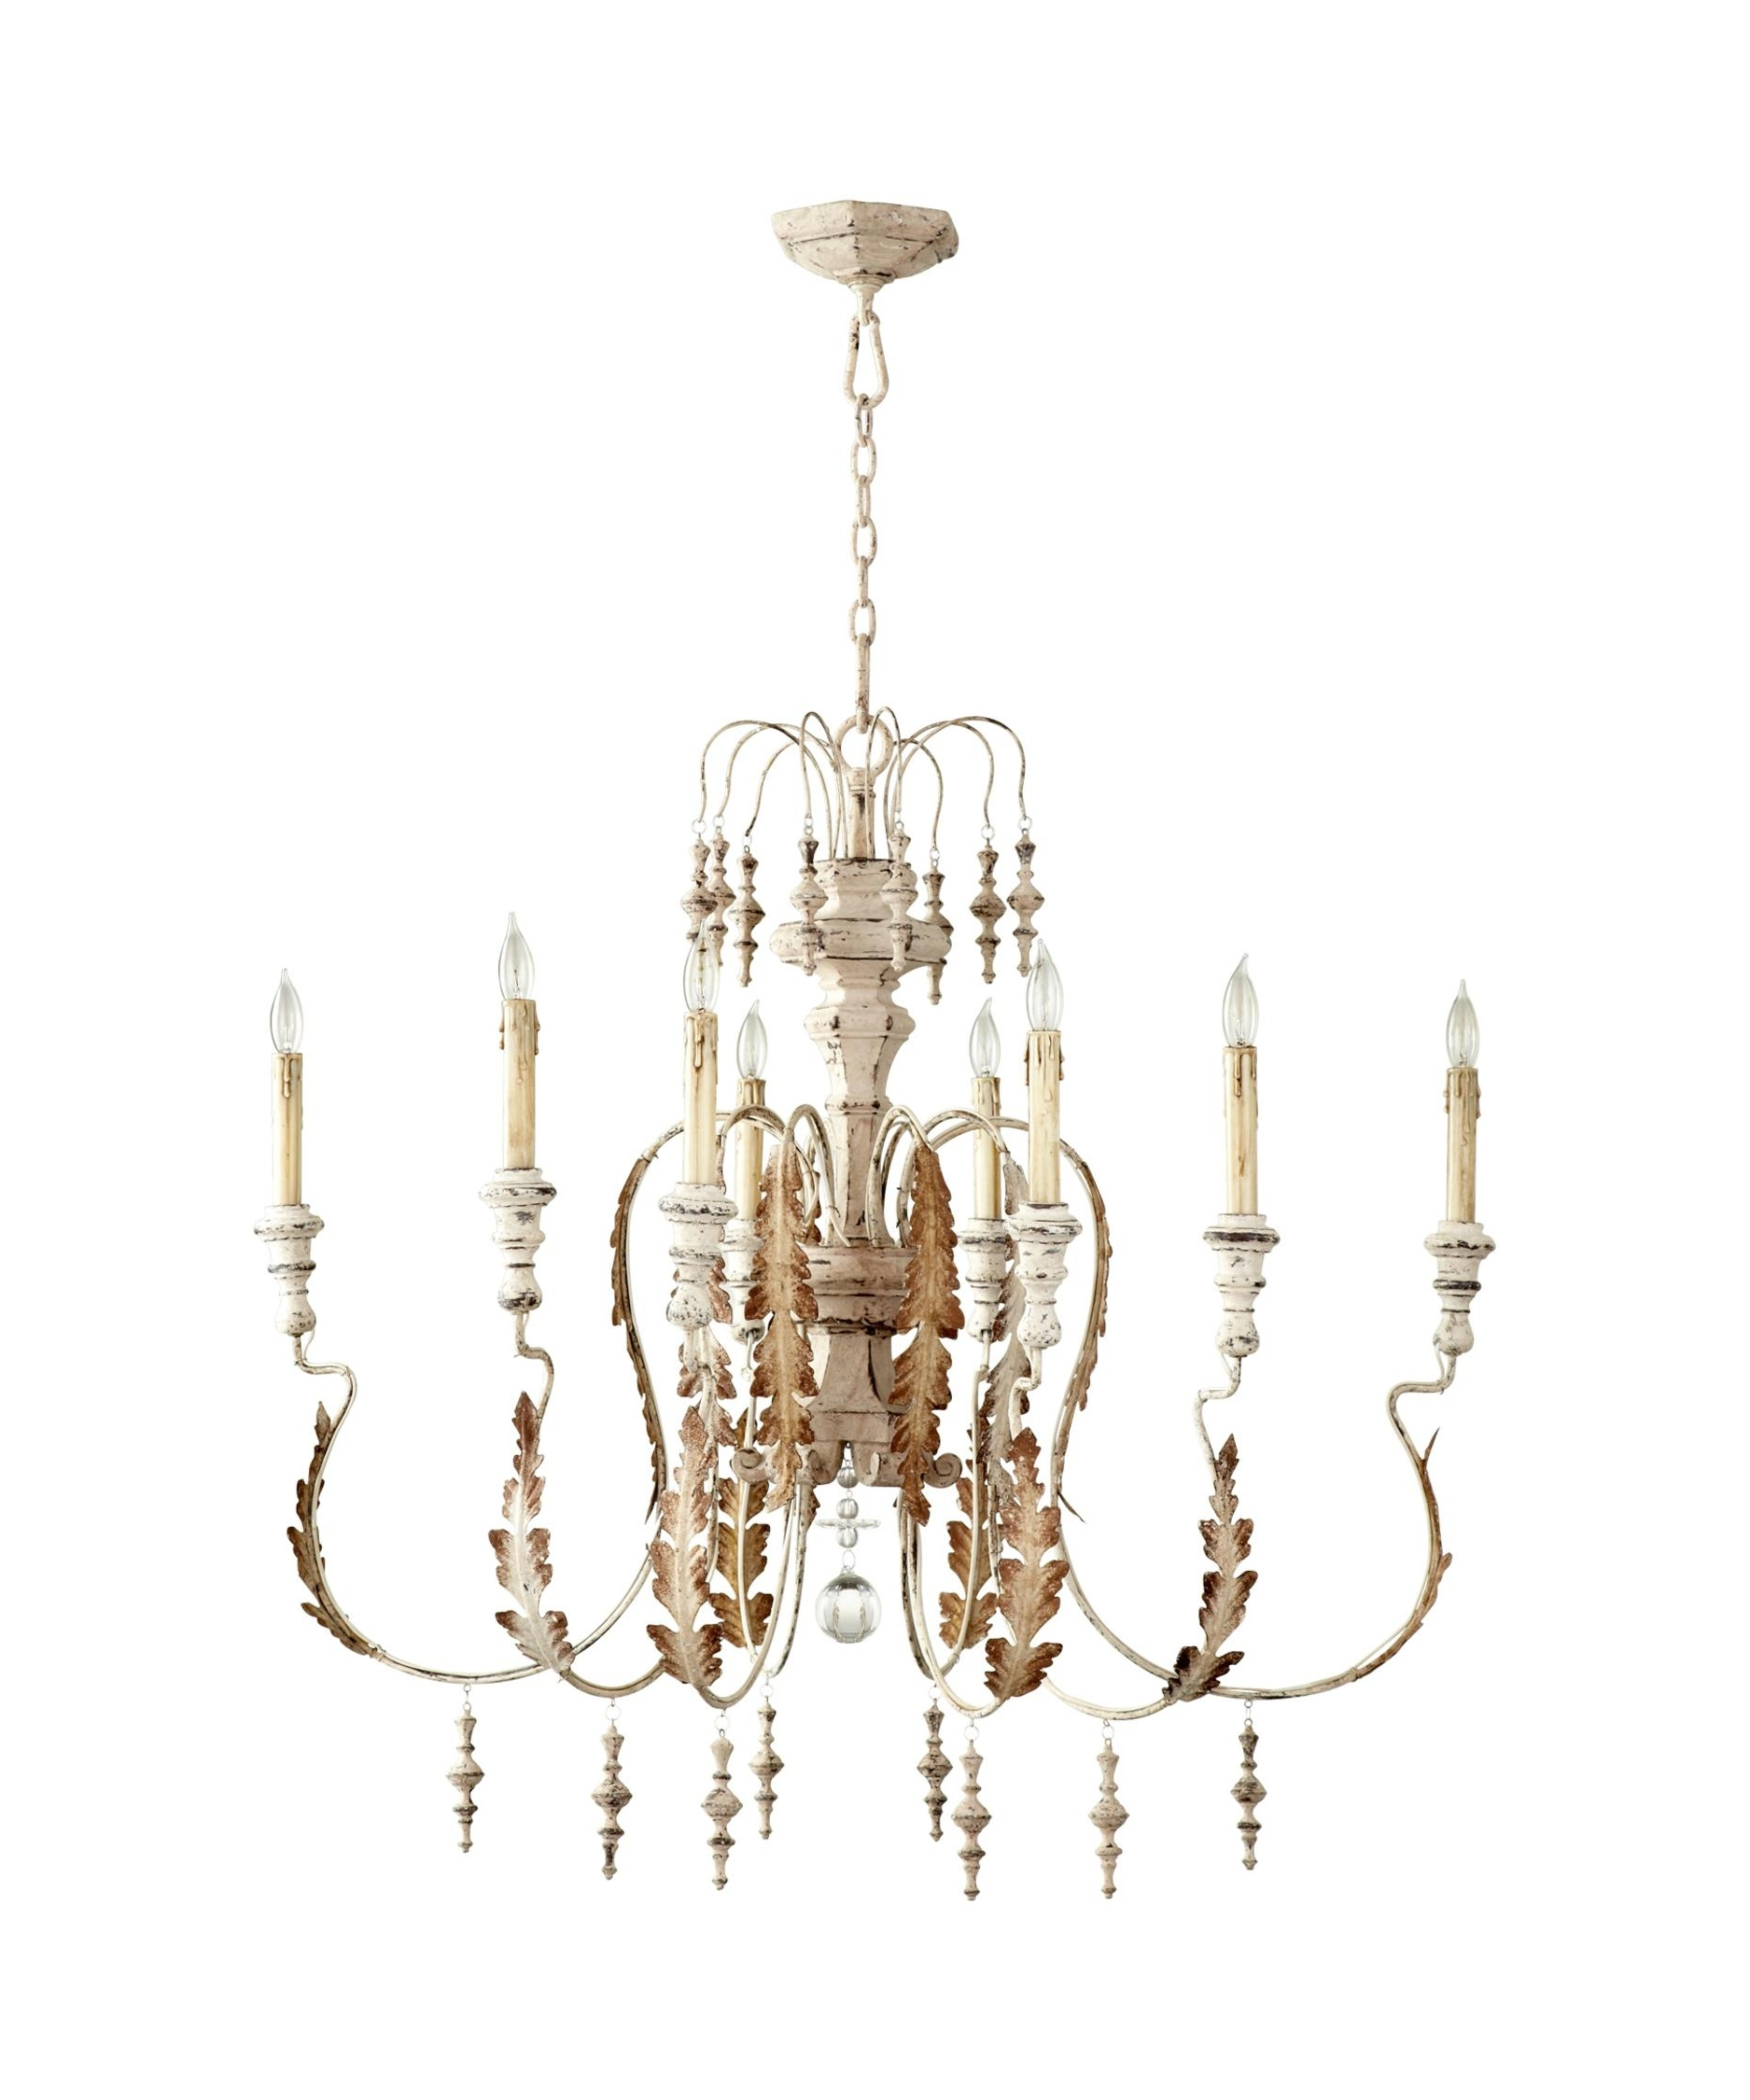 Chandelier Accessories In Most Recent Barry Wooley Designs (View 18 of 20)